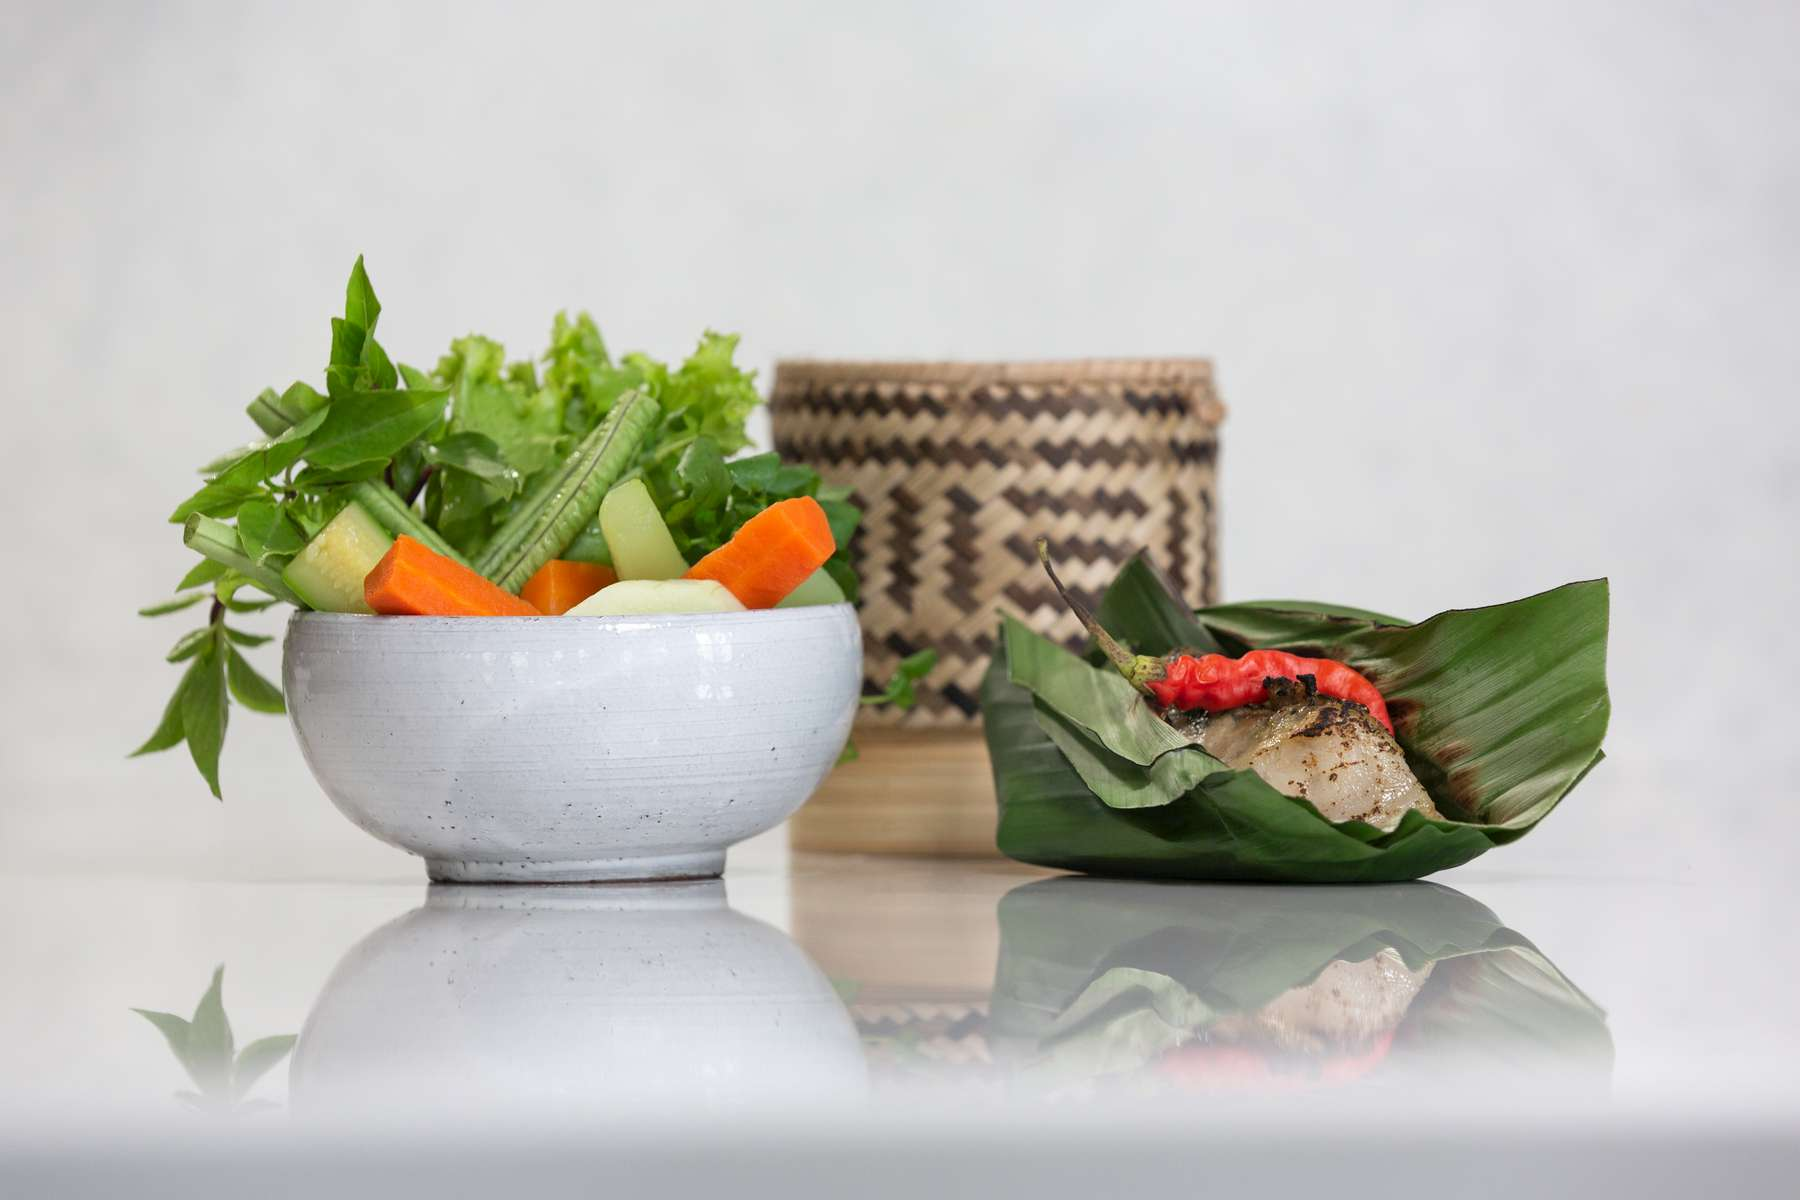 Pullman_Luang_Prabang_Laos_9112_Latelier_Mak-Pa_Vegetables_Sticky_Rice_Photo_by_Cyril_Eberle_CEB_7388